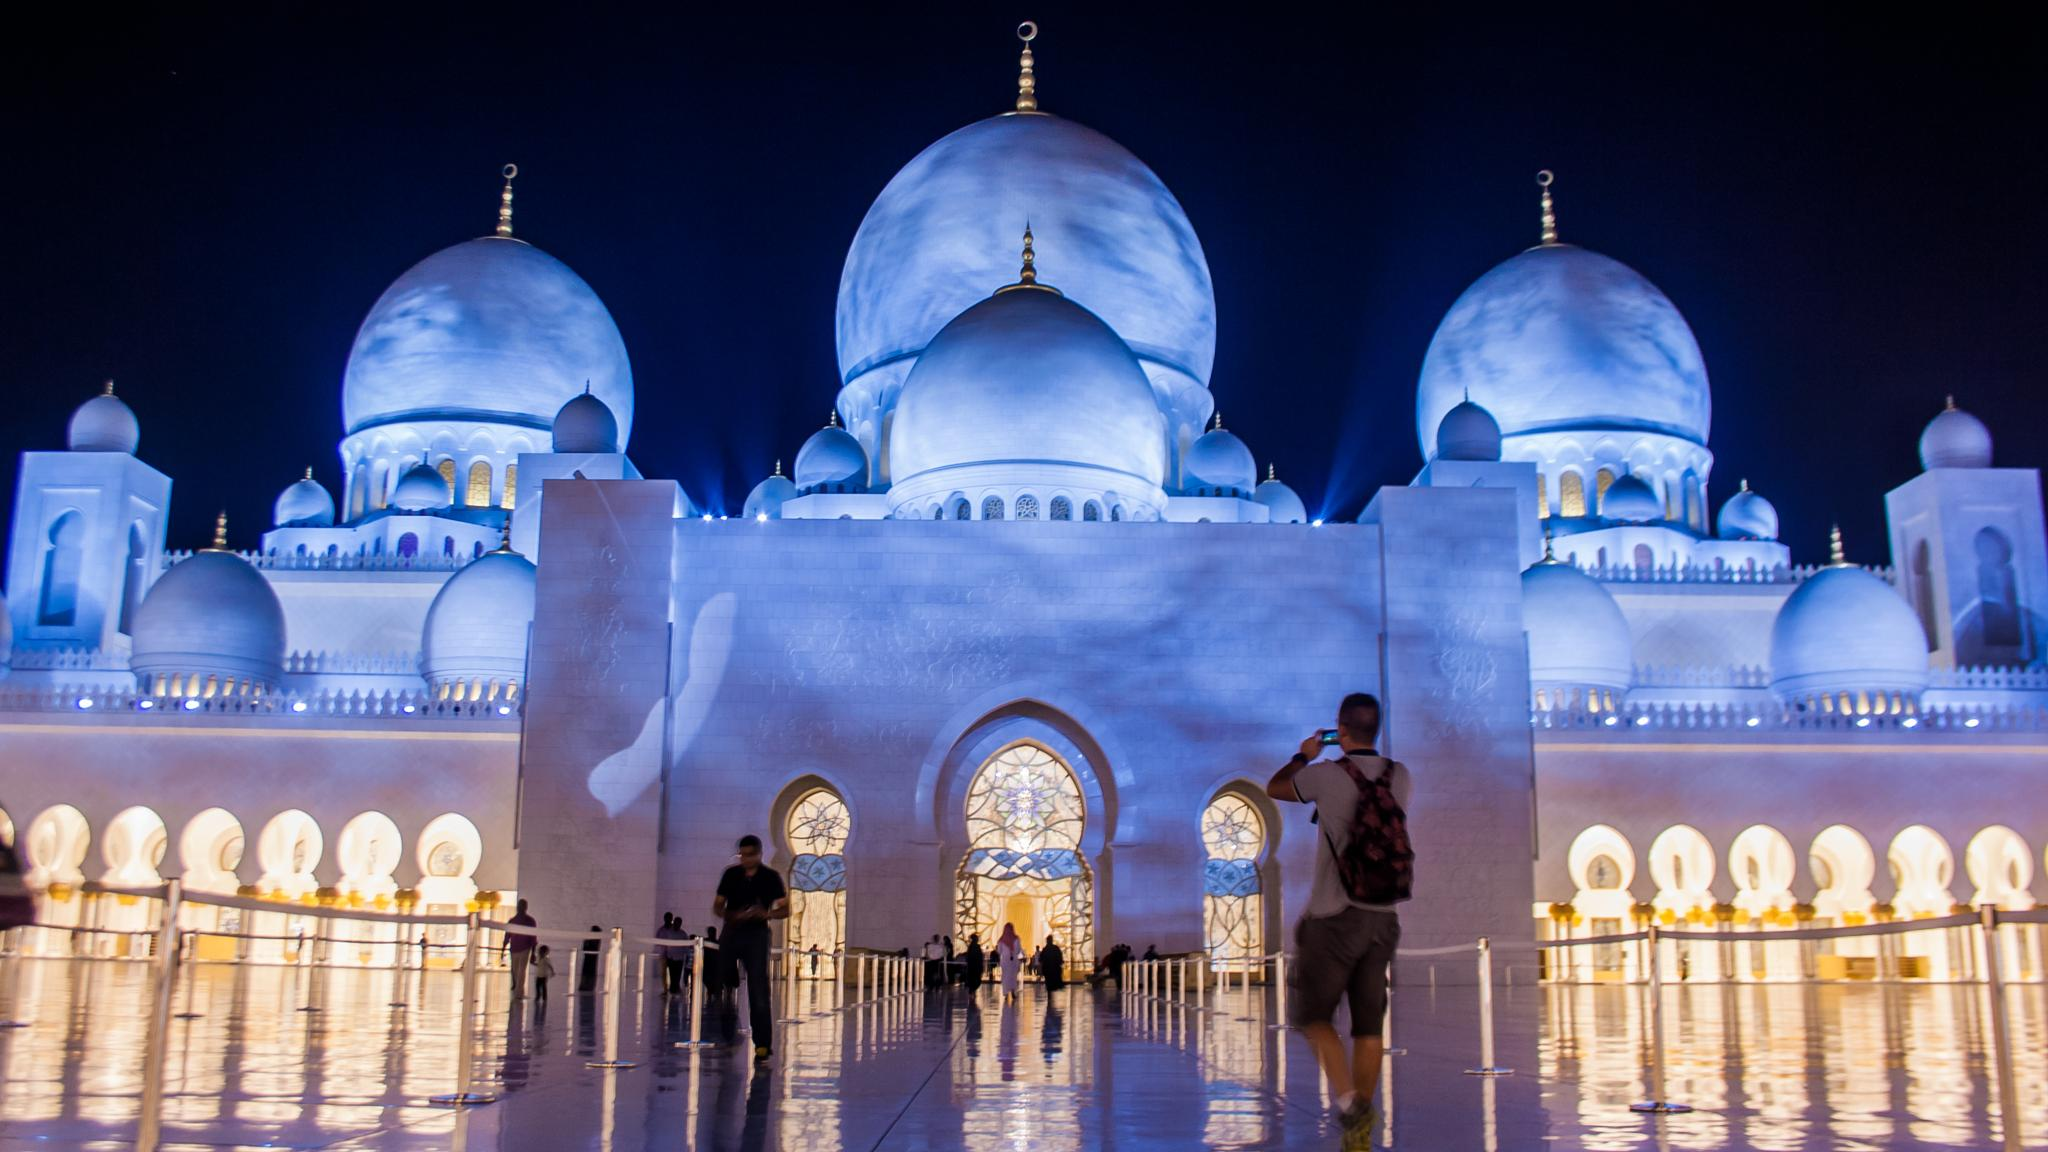 A most beautiful Mosque by Maurice Mbui